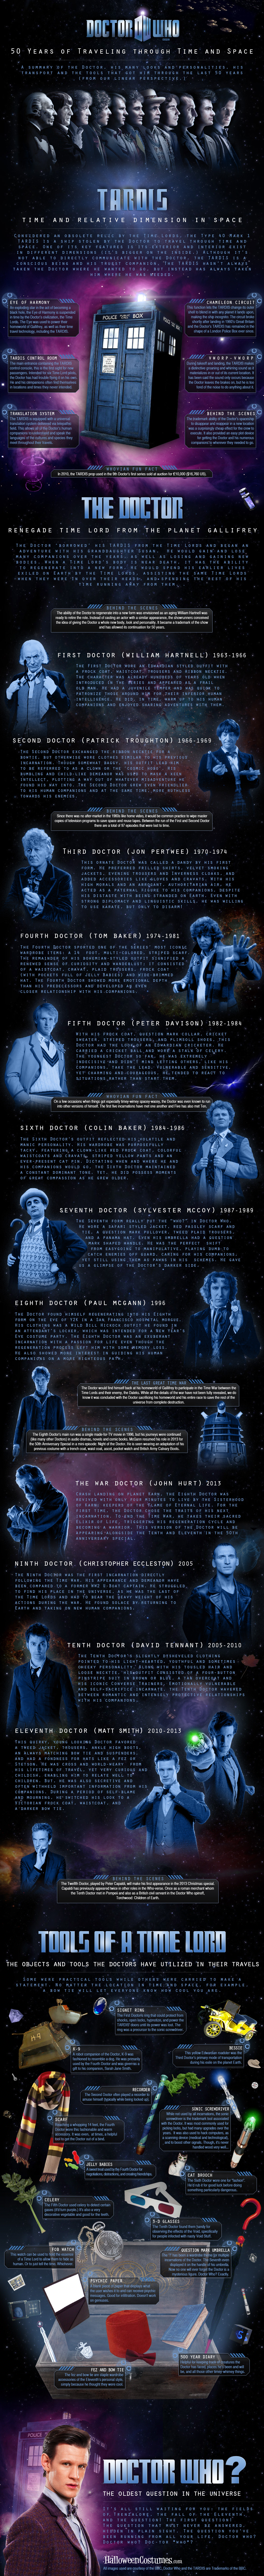 doctor-who-infographic